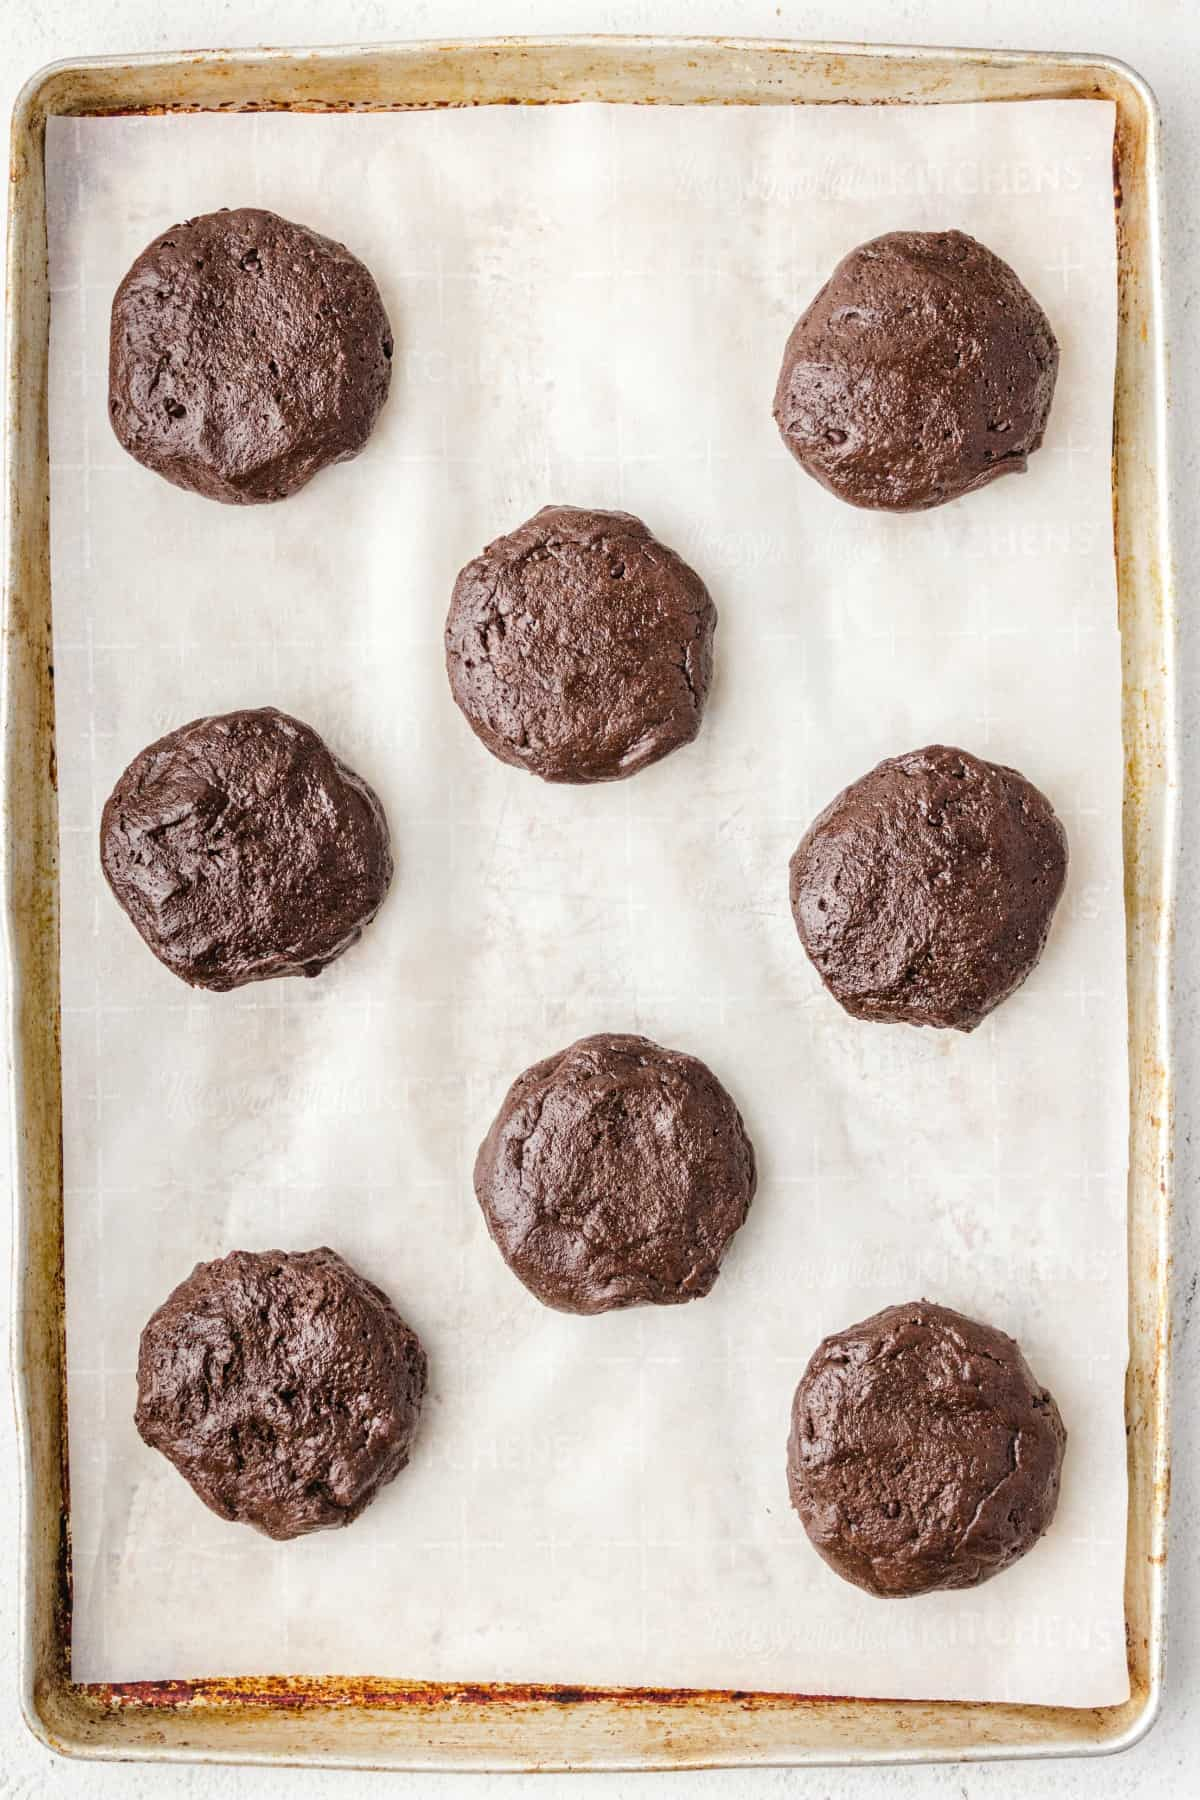 Peppermint Patty Cookies being baked